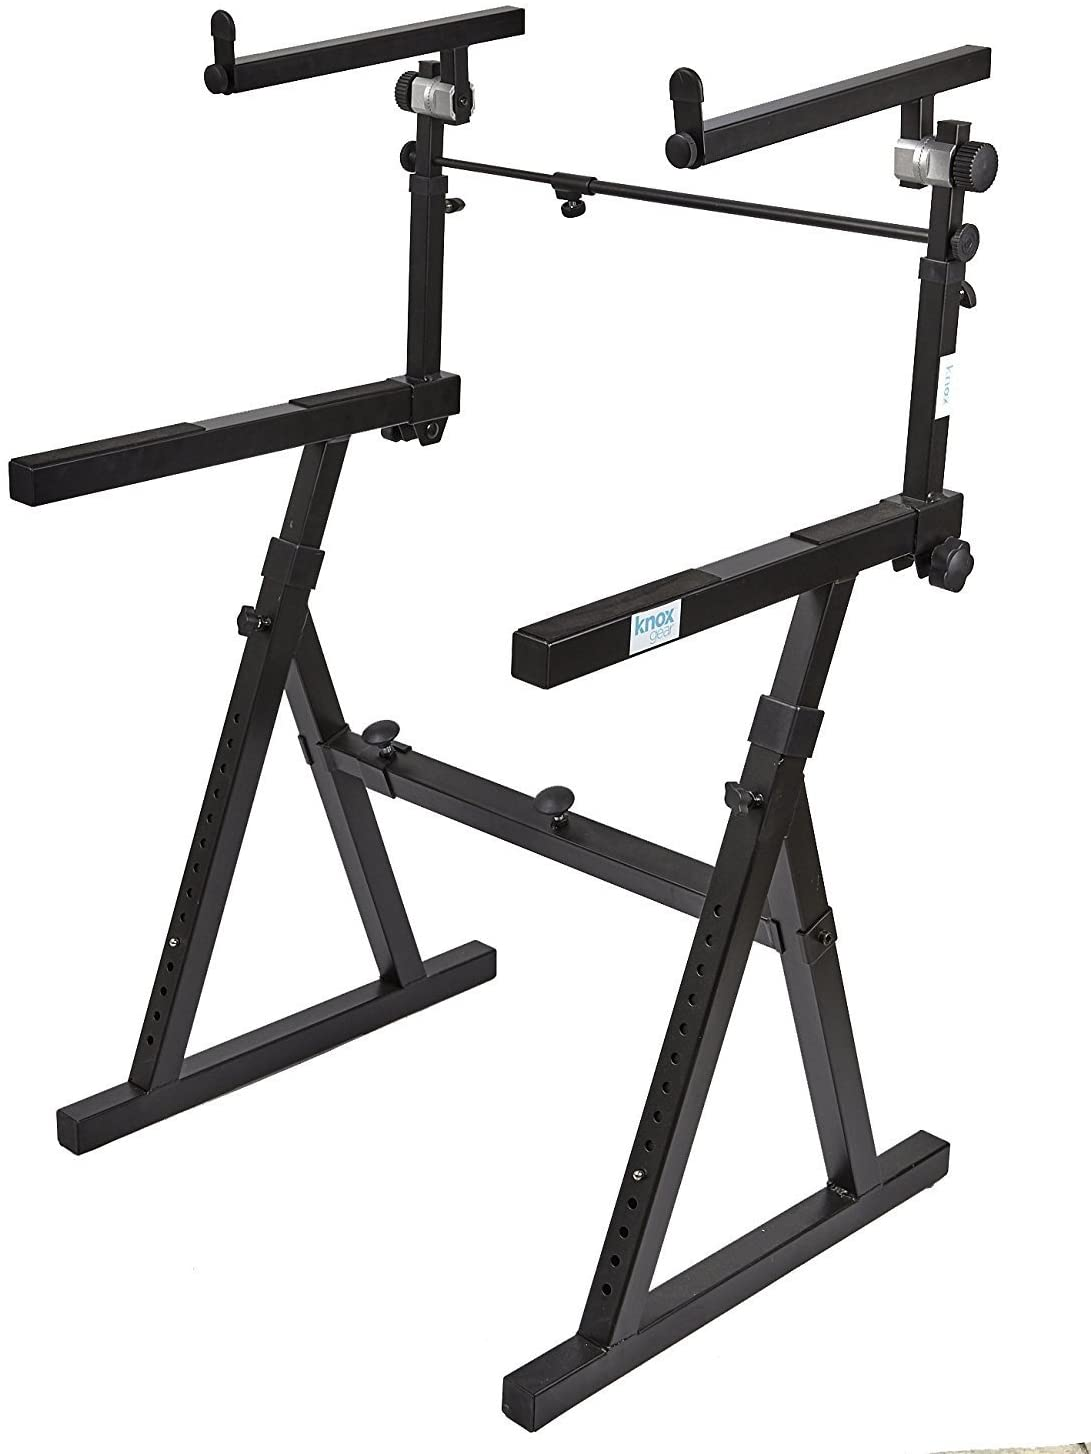 Knox Gear Z-Style Two Tier Electronic Keyboard Piano Stand (Version 2) Bundle (2 Items)